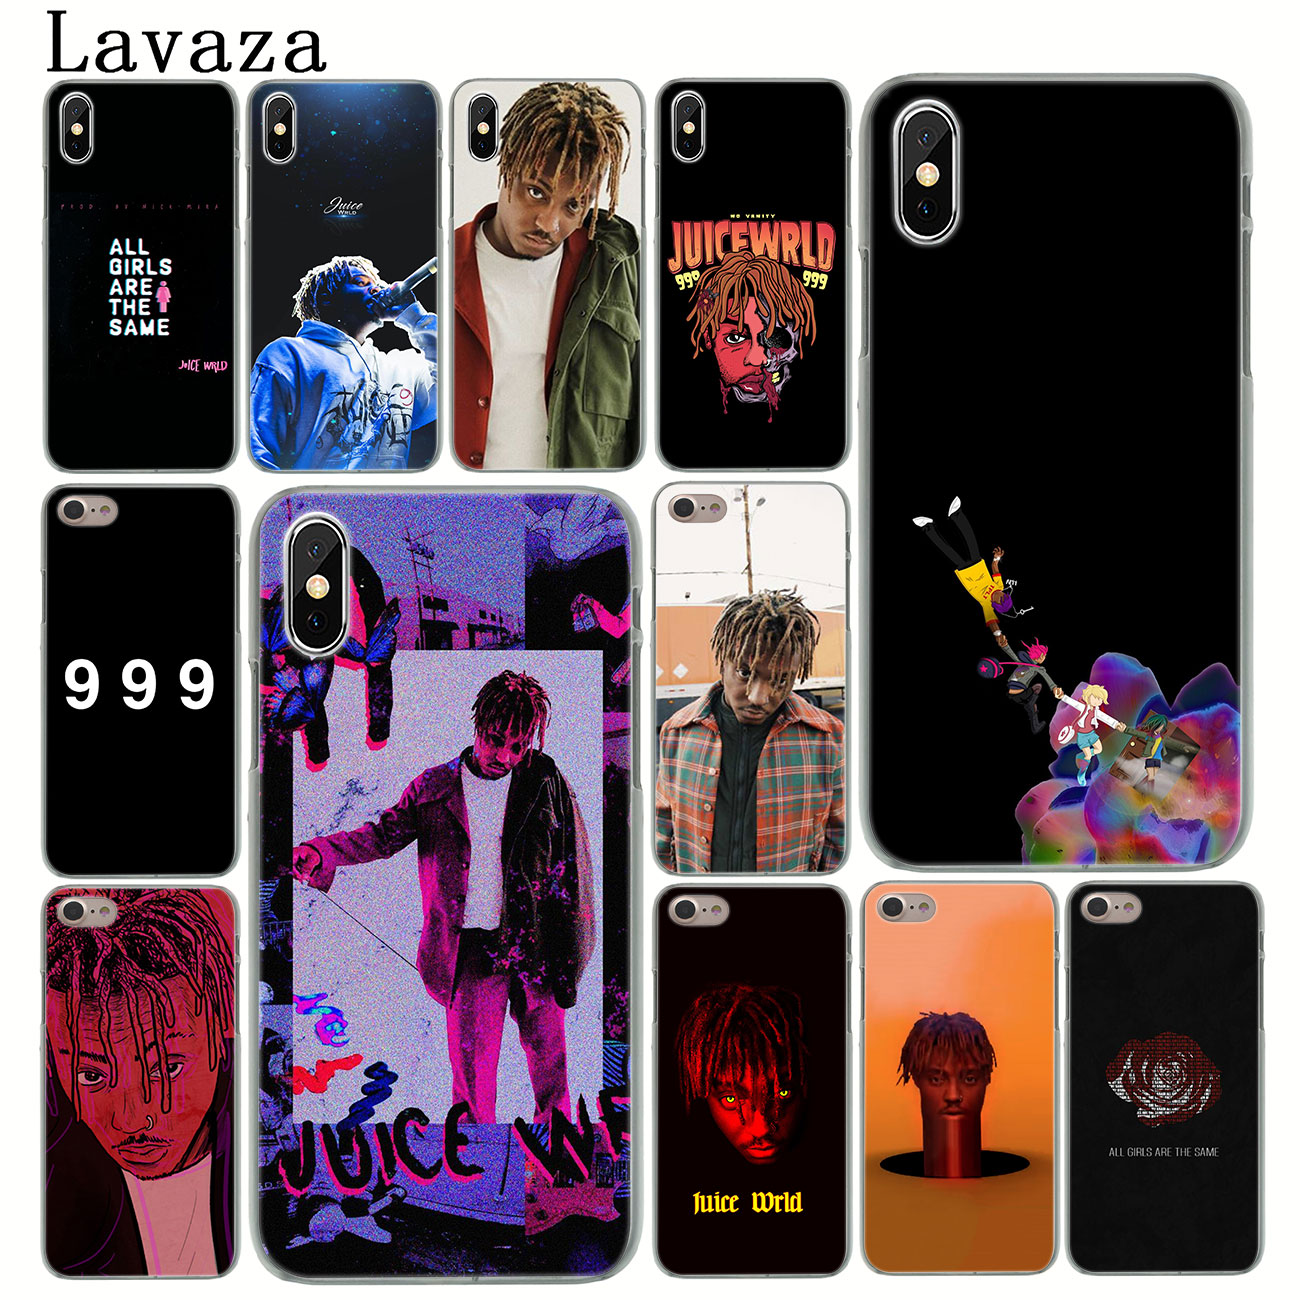 Lavaza Juice WRLD 999 Hard Phone Cover Case For IPhone XR X 11 Pro XS Max 8 7 6 6S 5 5S SE 4S 4 10